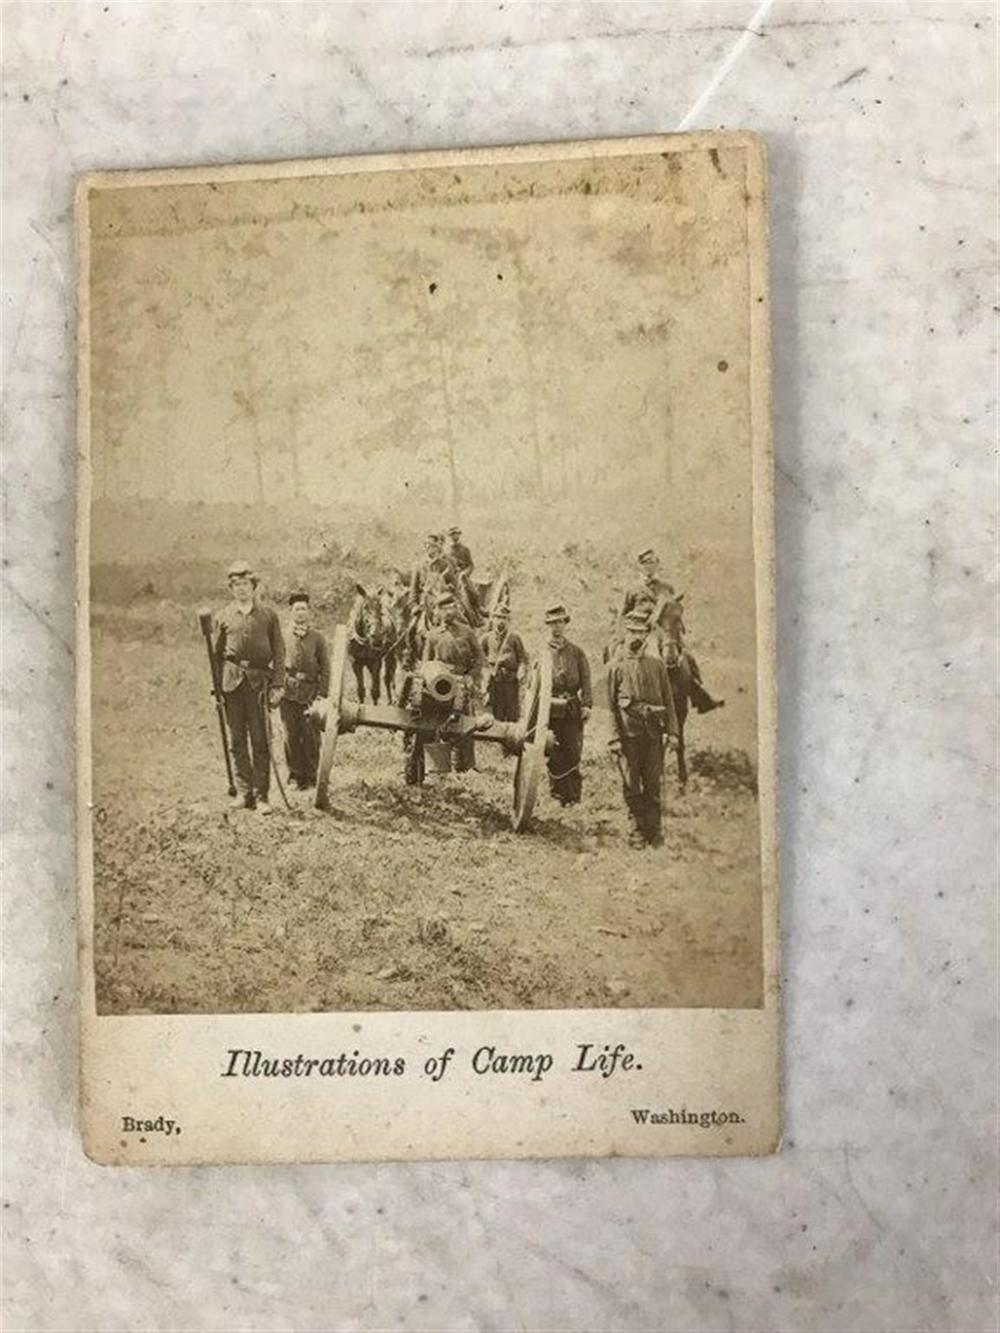 "M BRADY ILLUSTRATIONS OF CAMP LIFE PHOTOGRAPH, MEASURES 3 7/8"" X 2 5/8"", ESTATE FOUND CONDITION, LIKE OTHERS WE WILL BE LISTING.  ON BACK IN PENCIL IT SAYS SHERMANS BATTERY?"